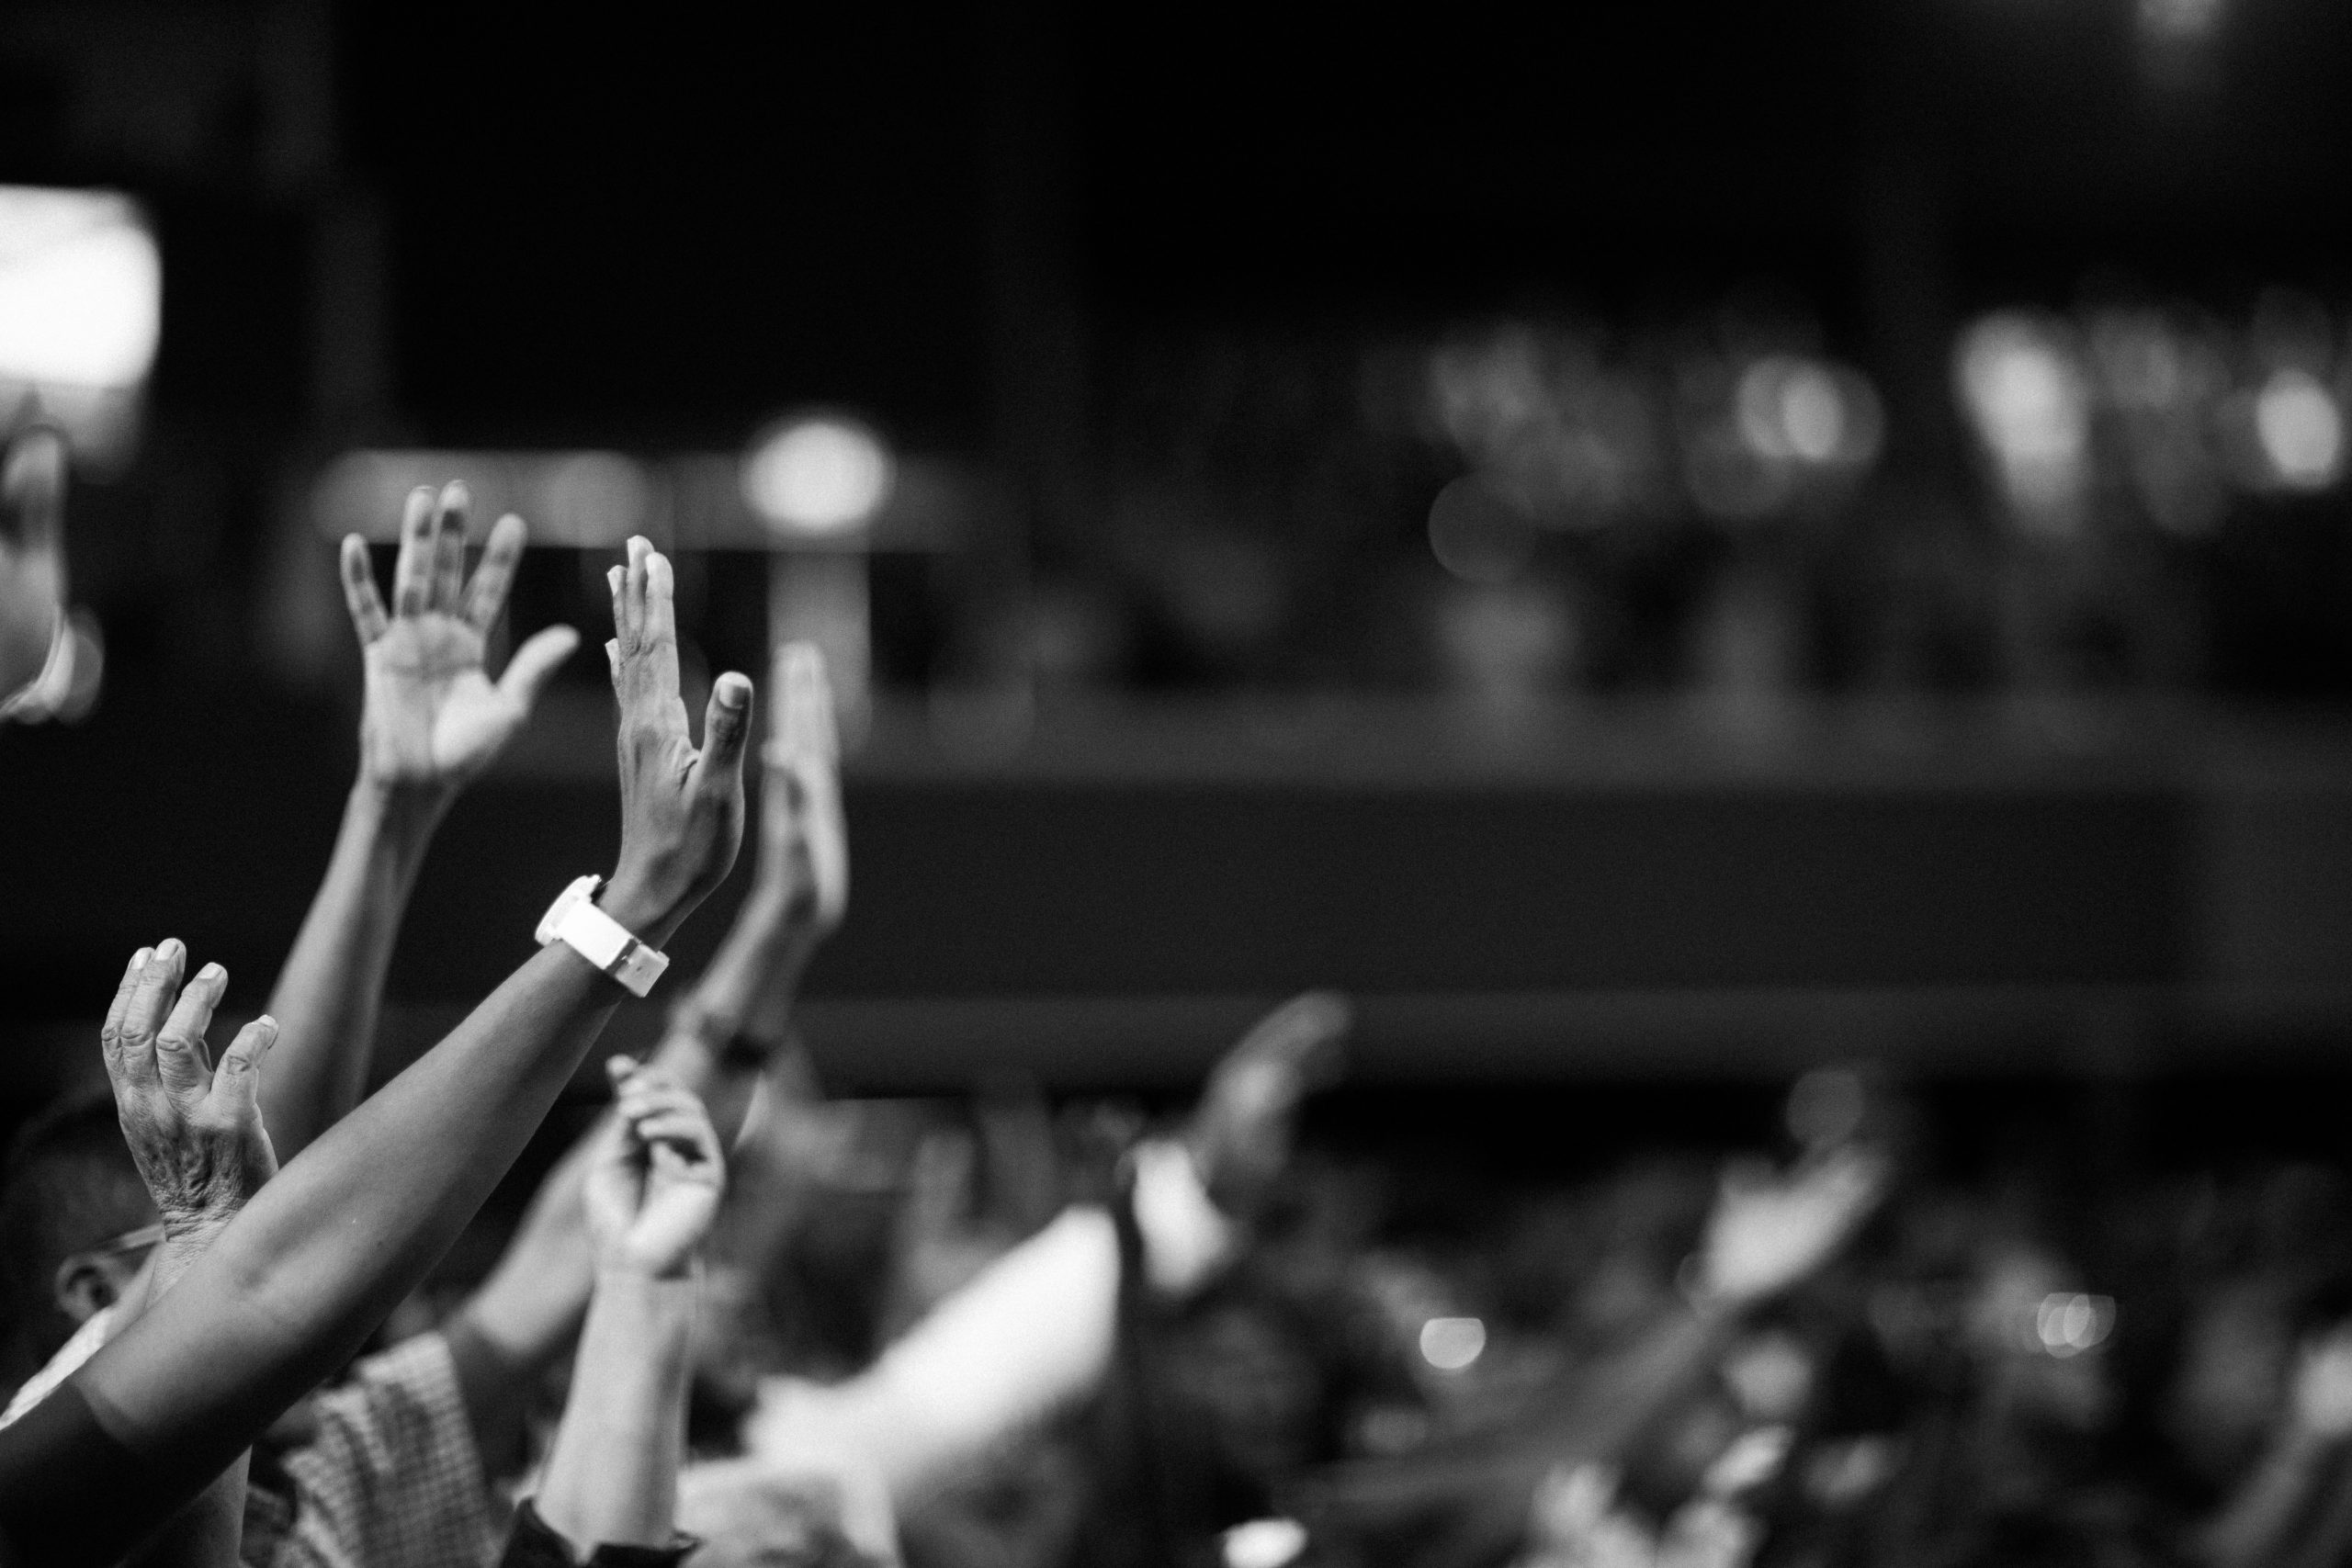 Multiple hands being raised in a church setting